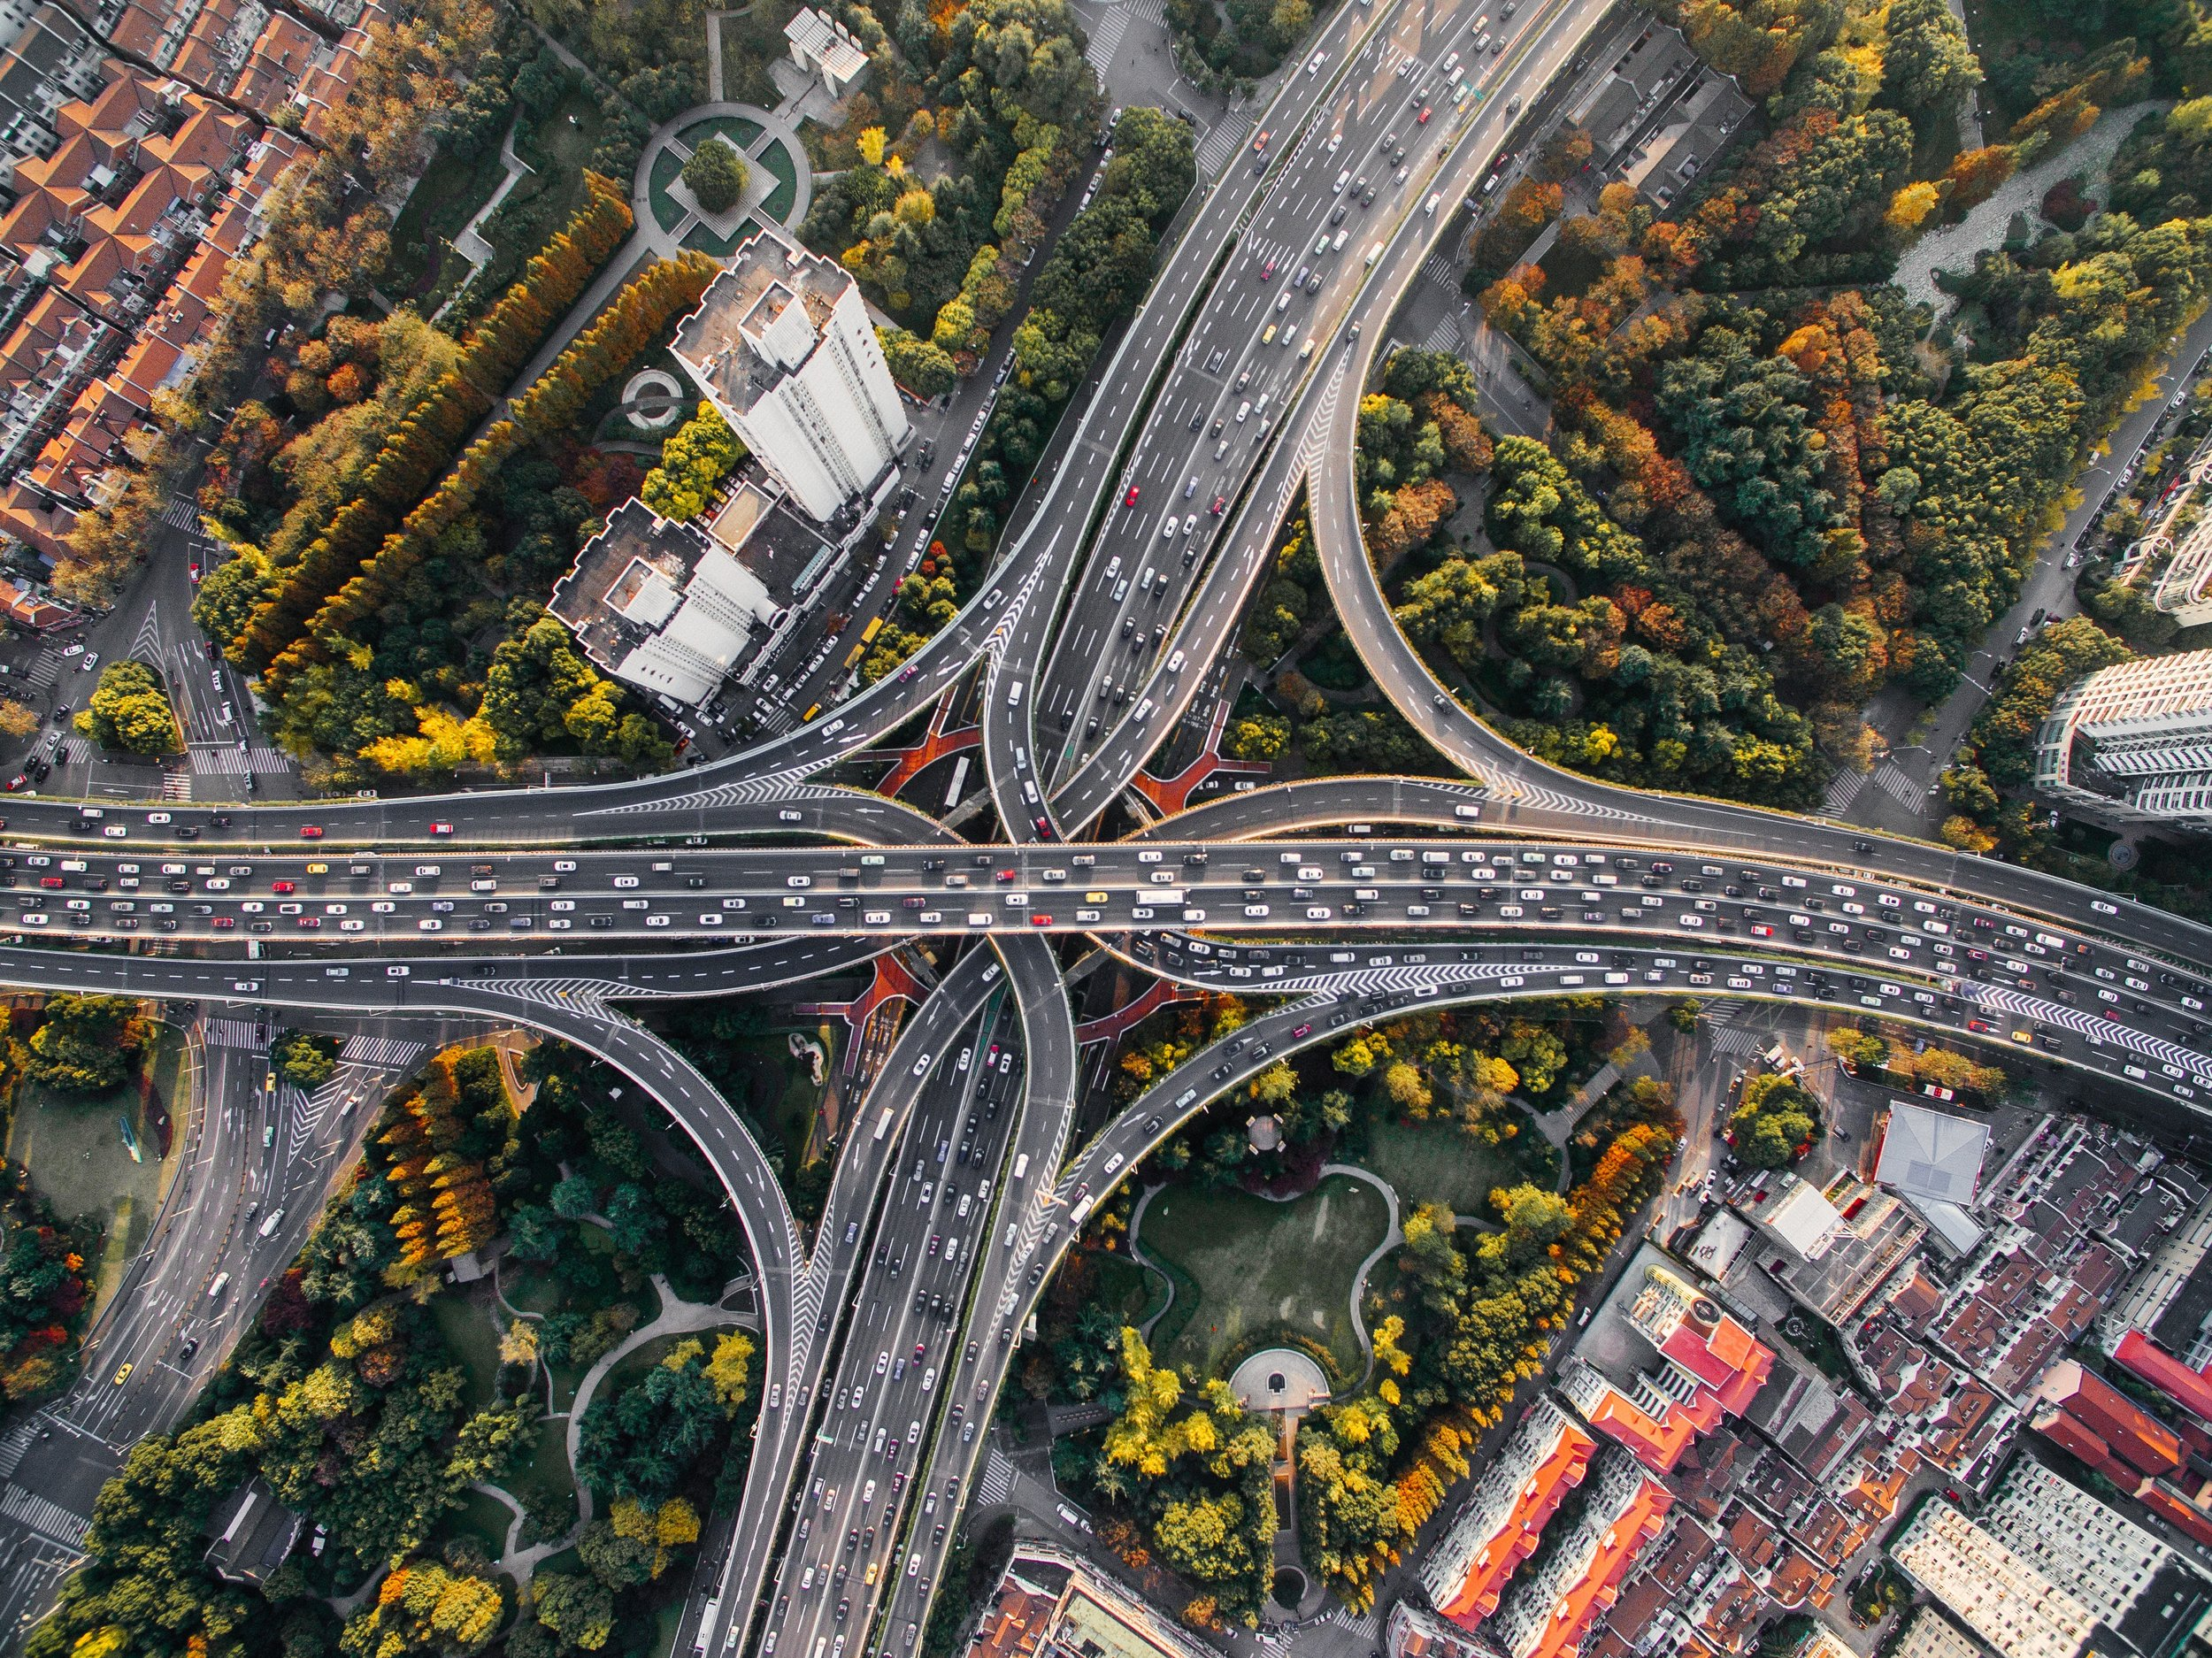 aerial-view-of-interchange-at-rush-hour